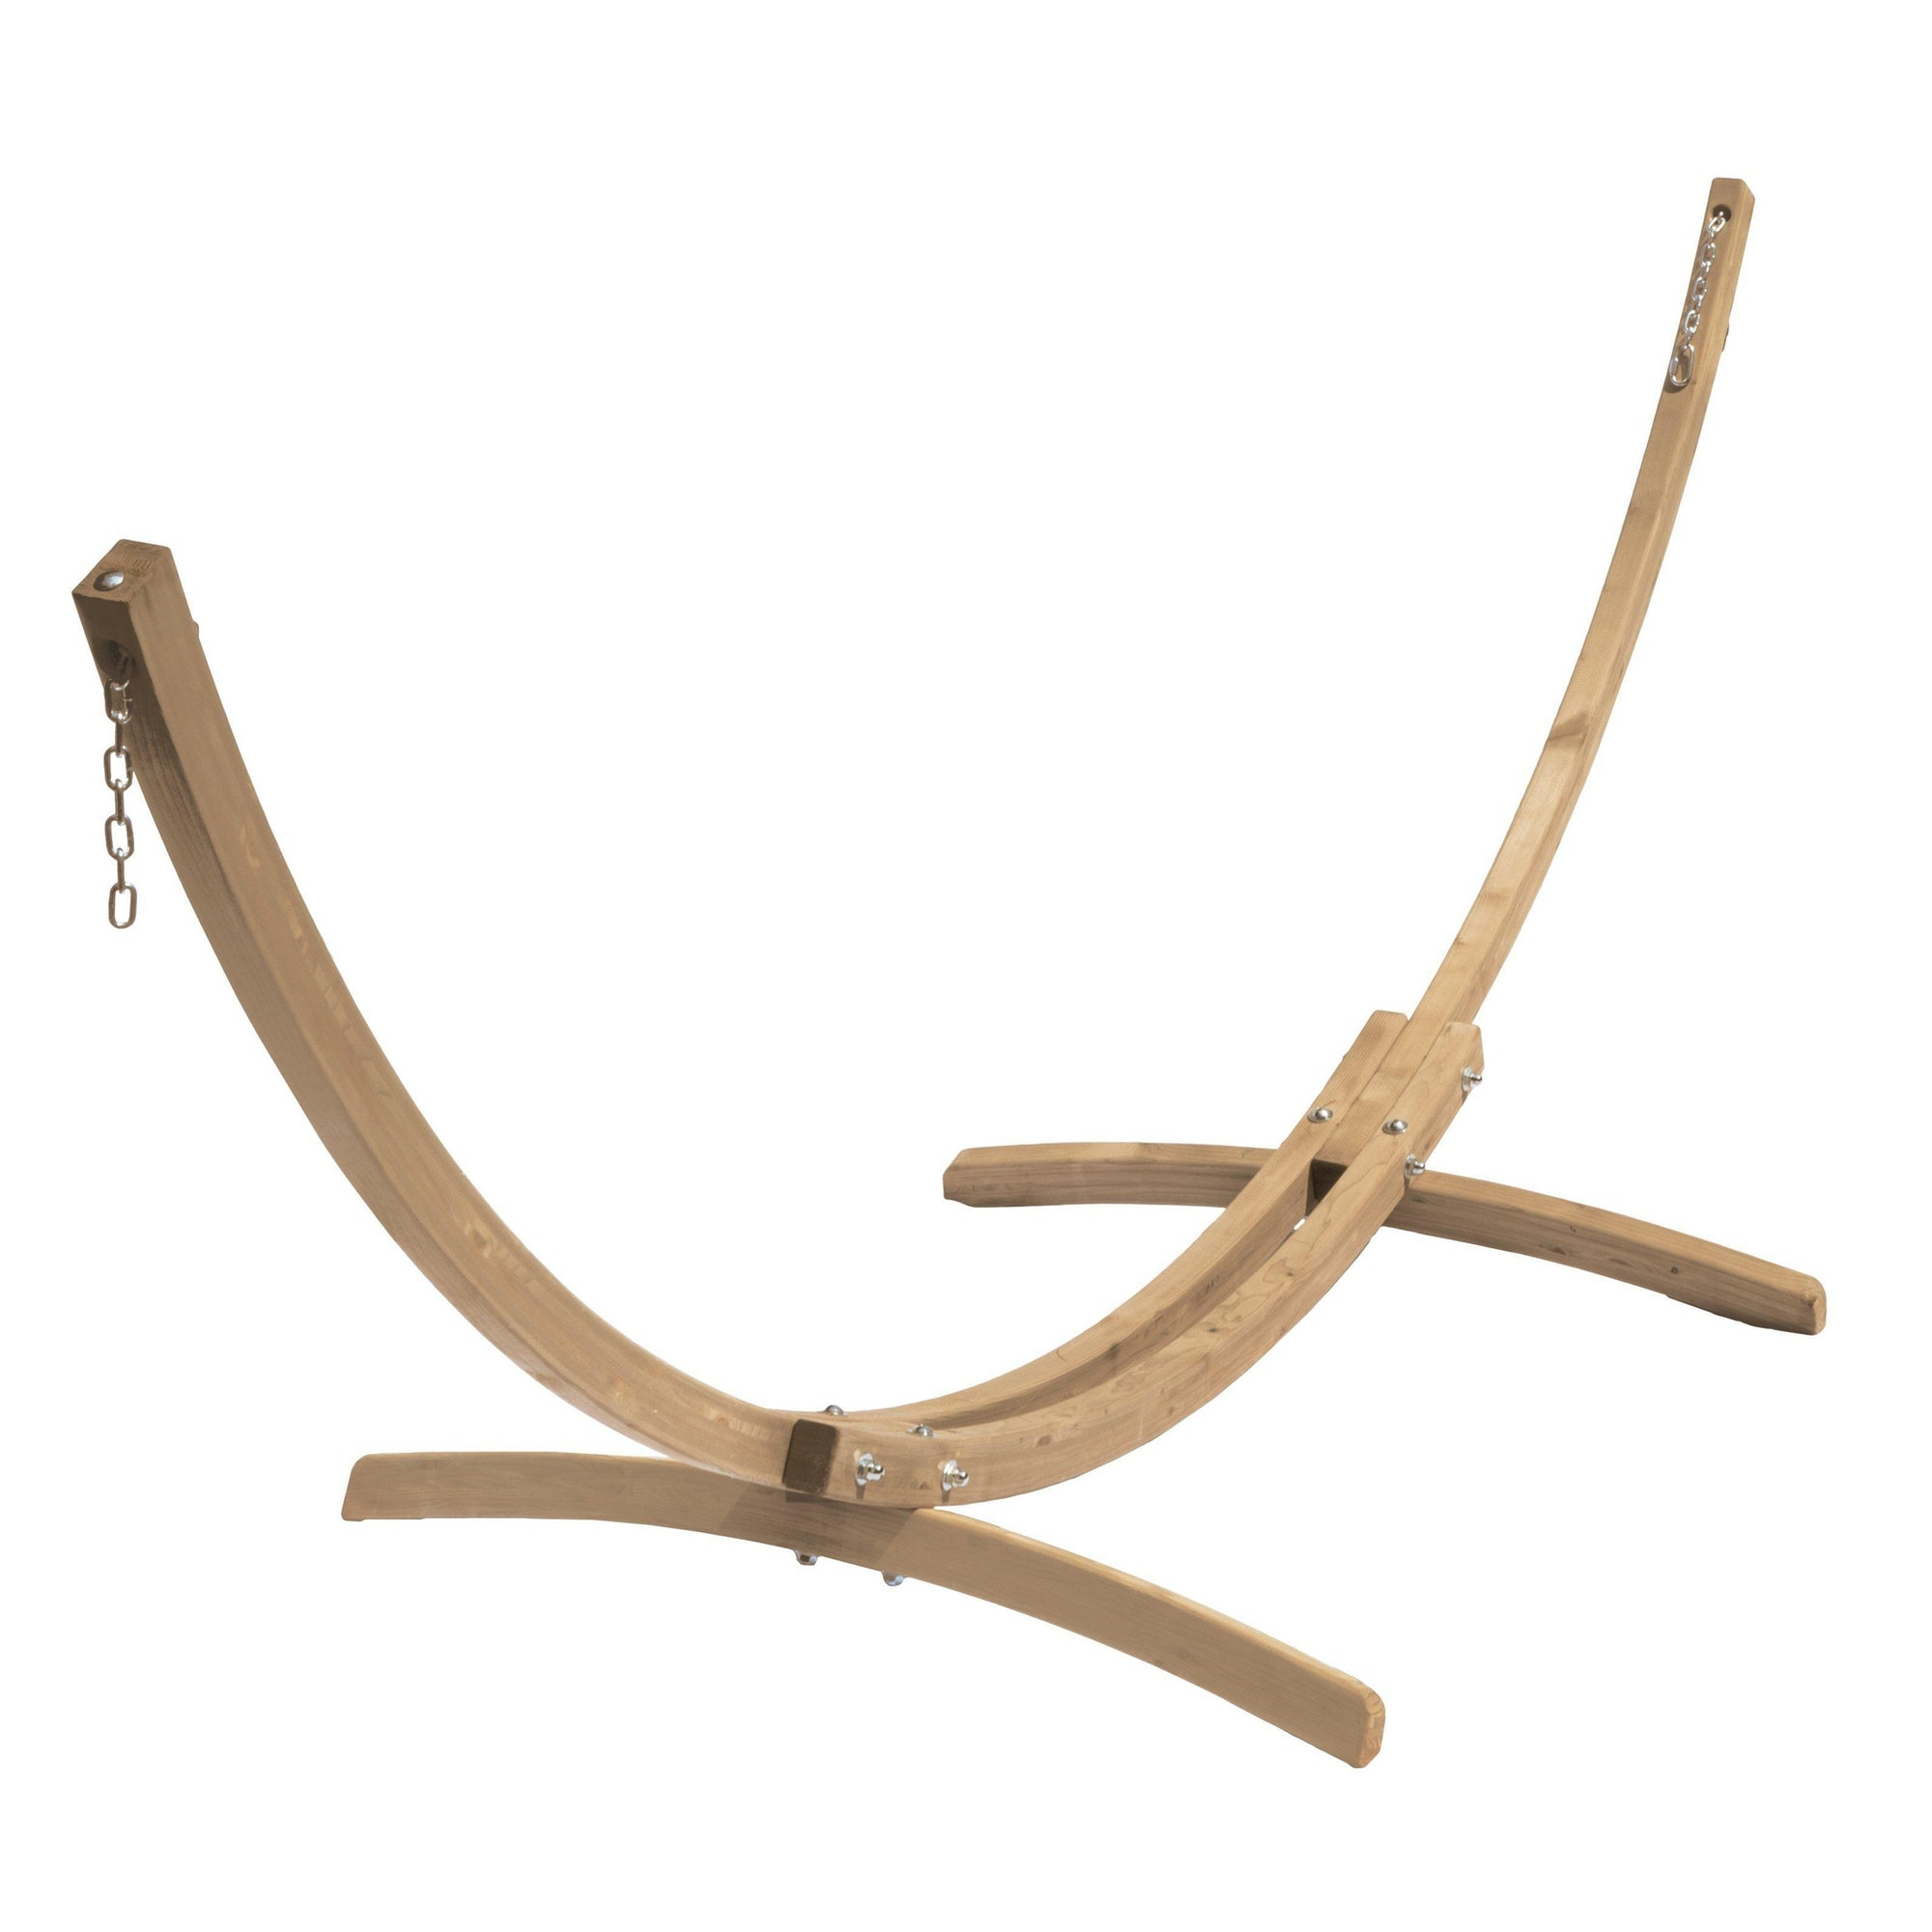 Krono Hammock Stand, from Byer of Maine